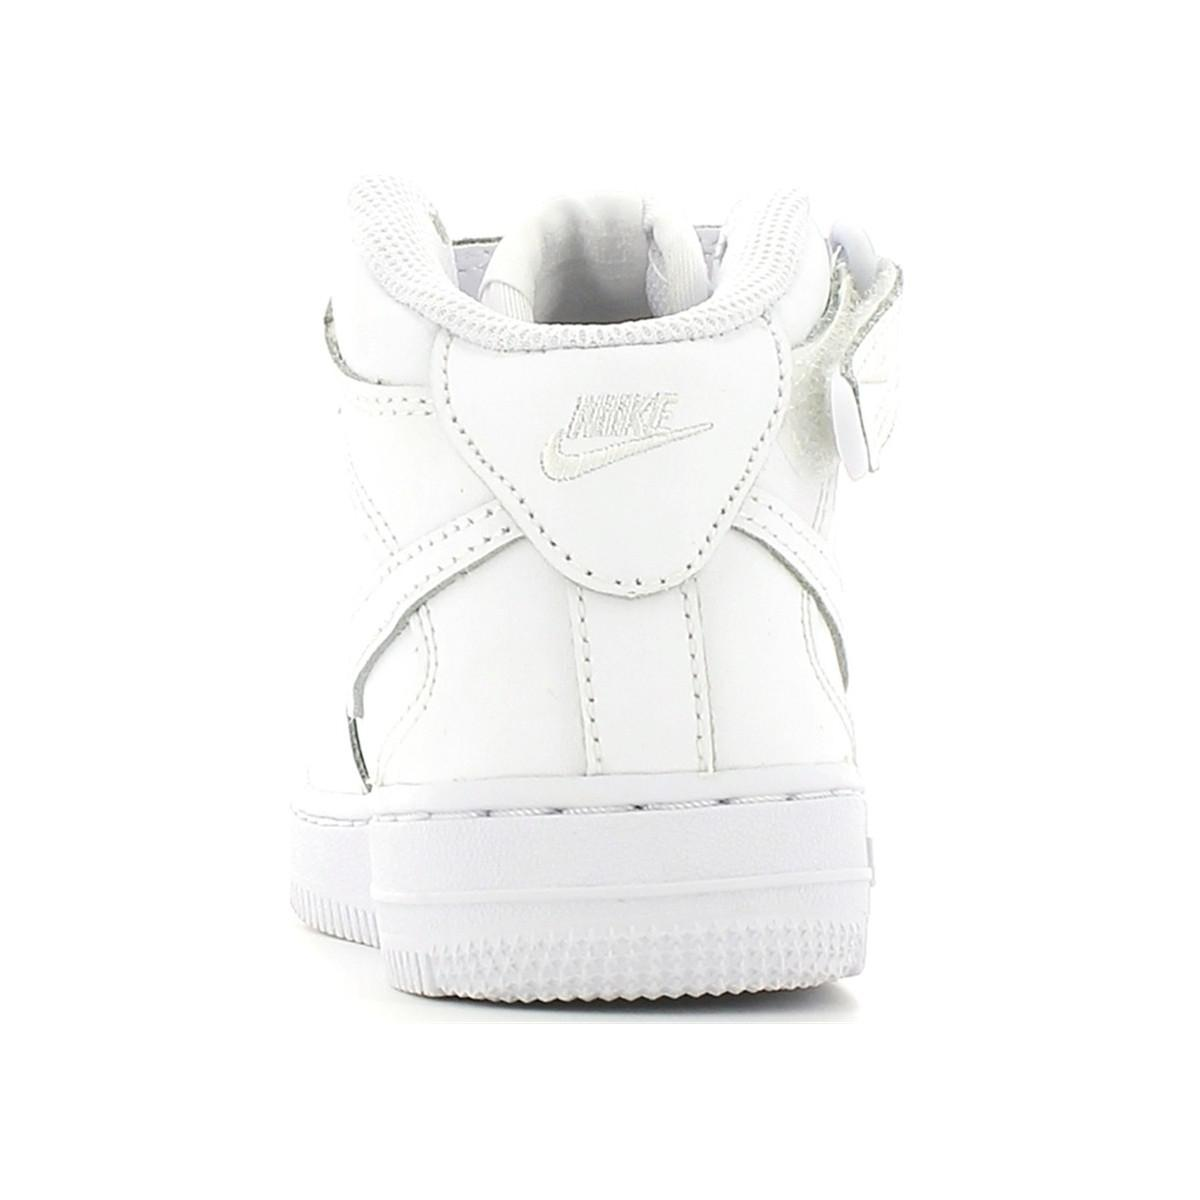 Nike 314196 Sport Shoes Kid White Women's Shoes (high-top Trainers) In White